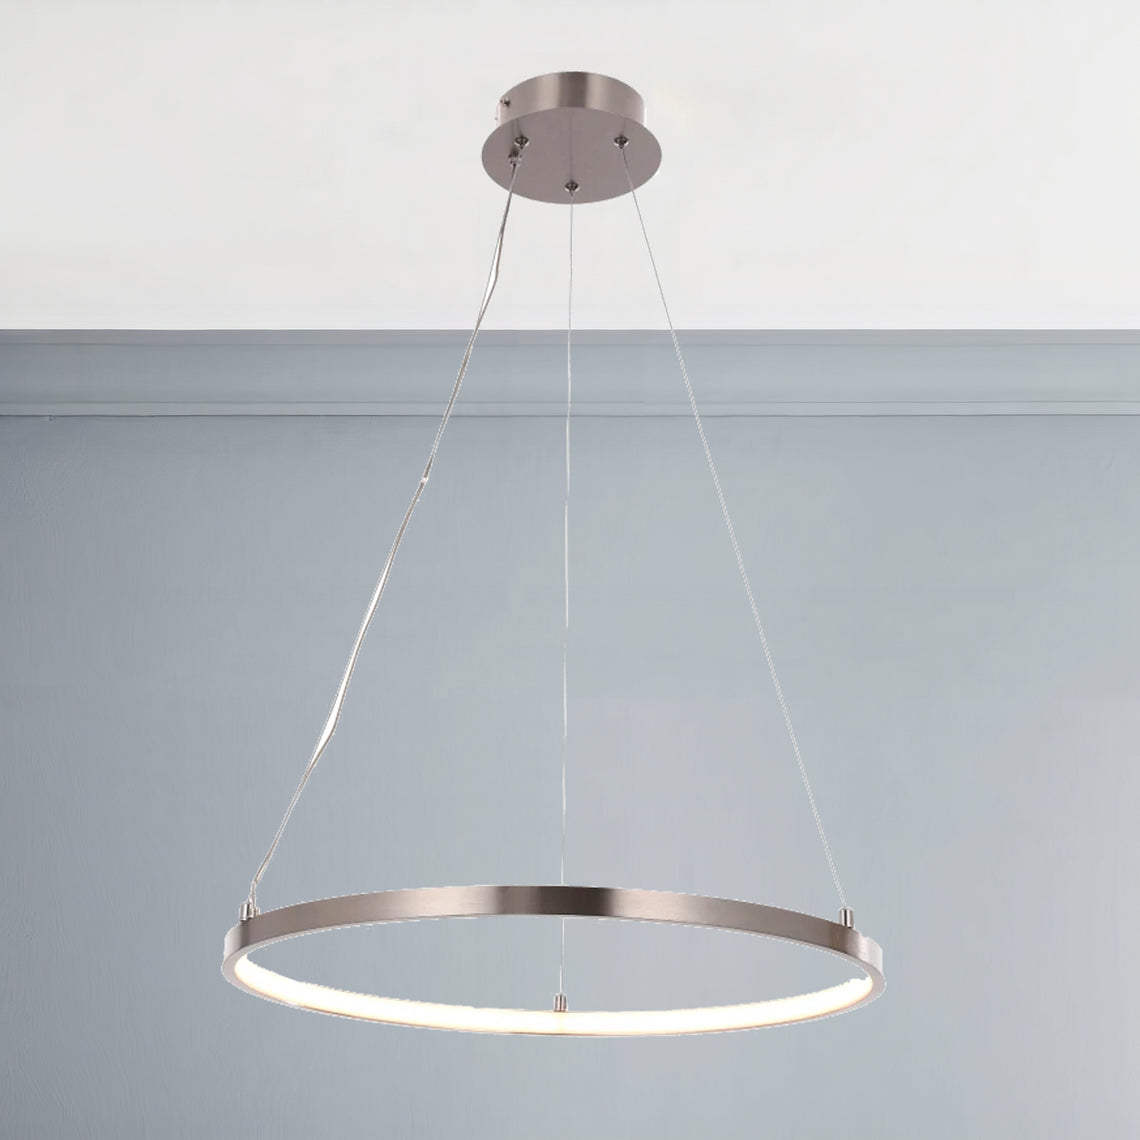 30W Round LED Pendant Light, Brushed Nickel Finish, Dimmable, 3000K (Warm White), 2900 Lumens, ETL Listed